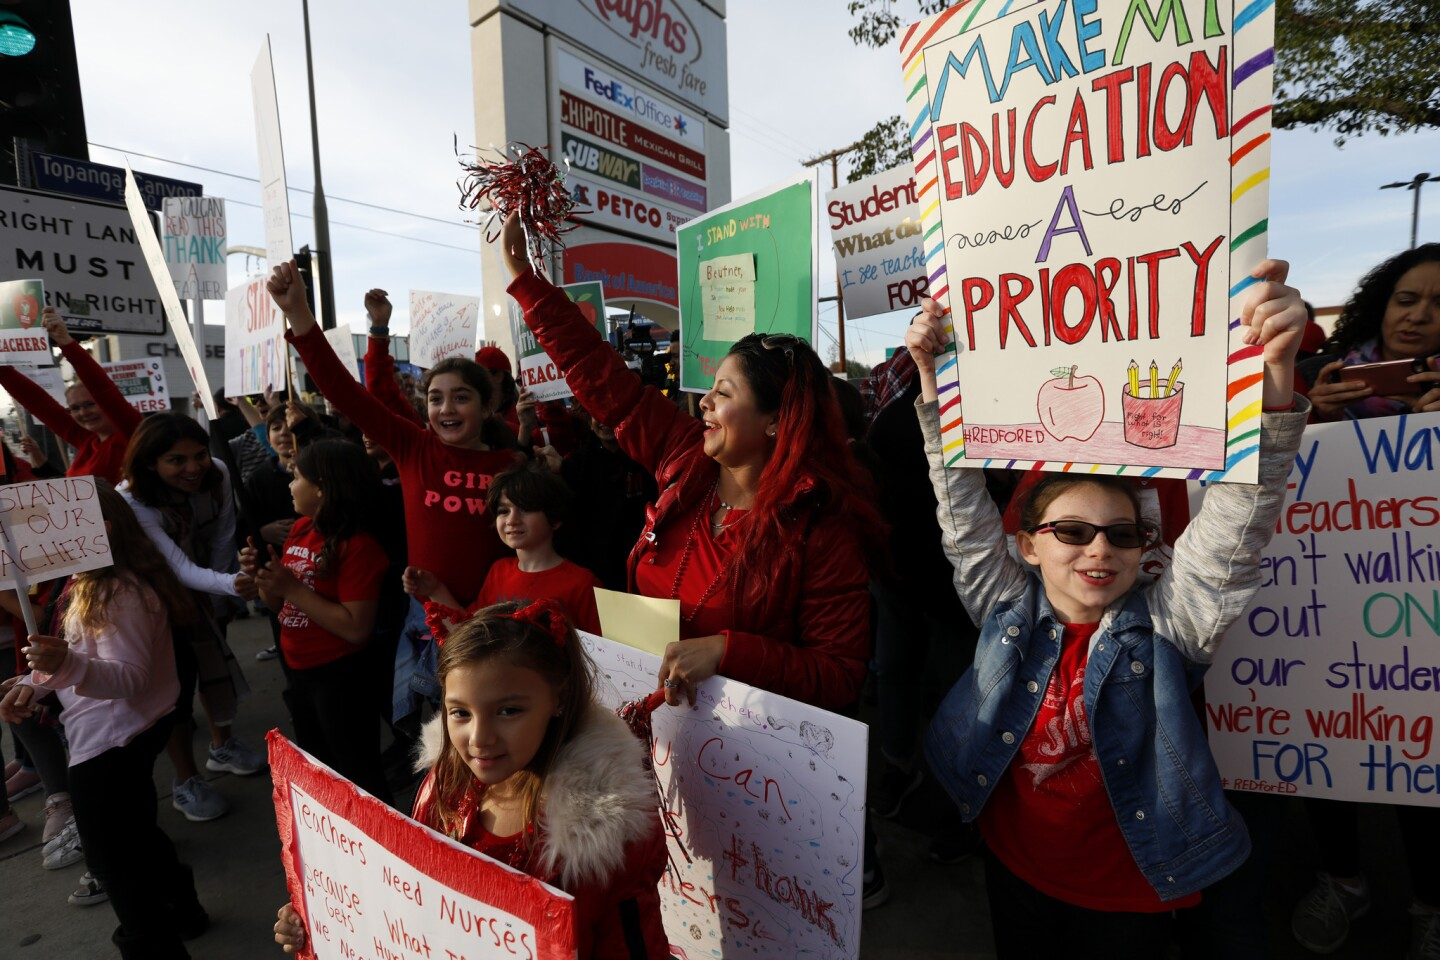 Parents, teachers, and students rally in support of teachers at the corner of Topanga Canyon and Ventura Blvd. in Woodland Hills.